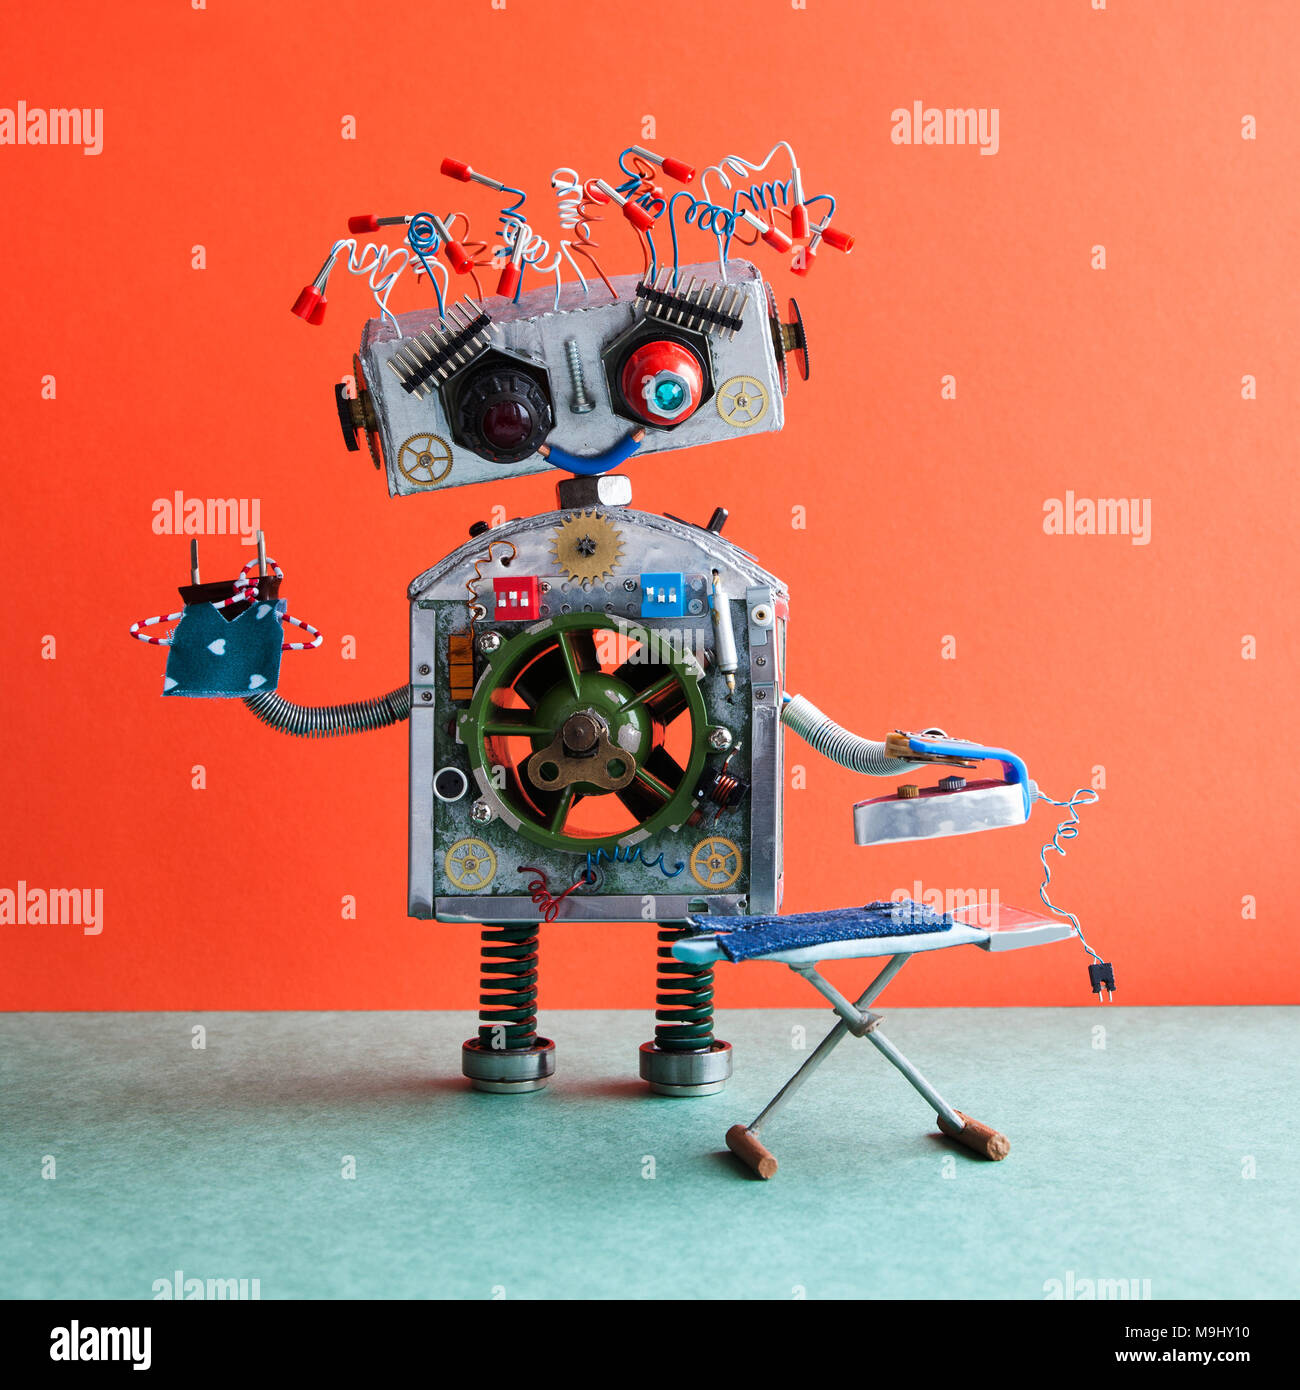 Robotic ironing service concept. Big robot housework assistant ironing blue jeans with iron on the board. Orange wall, green floor - Stock Image